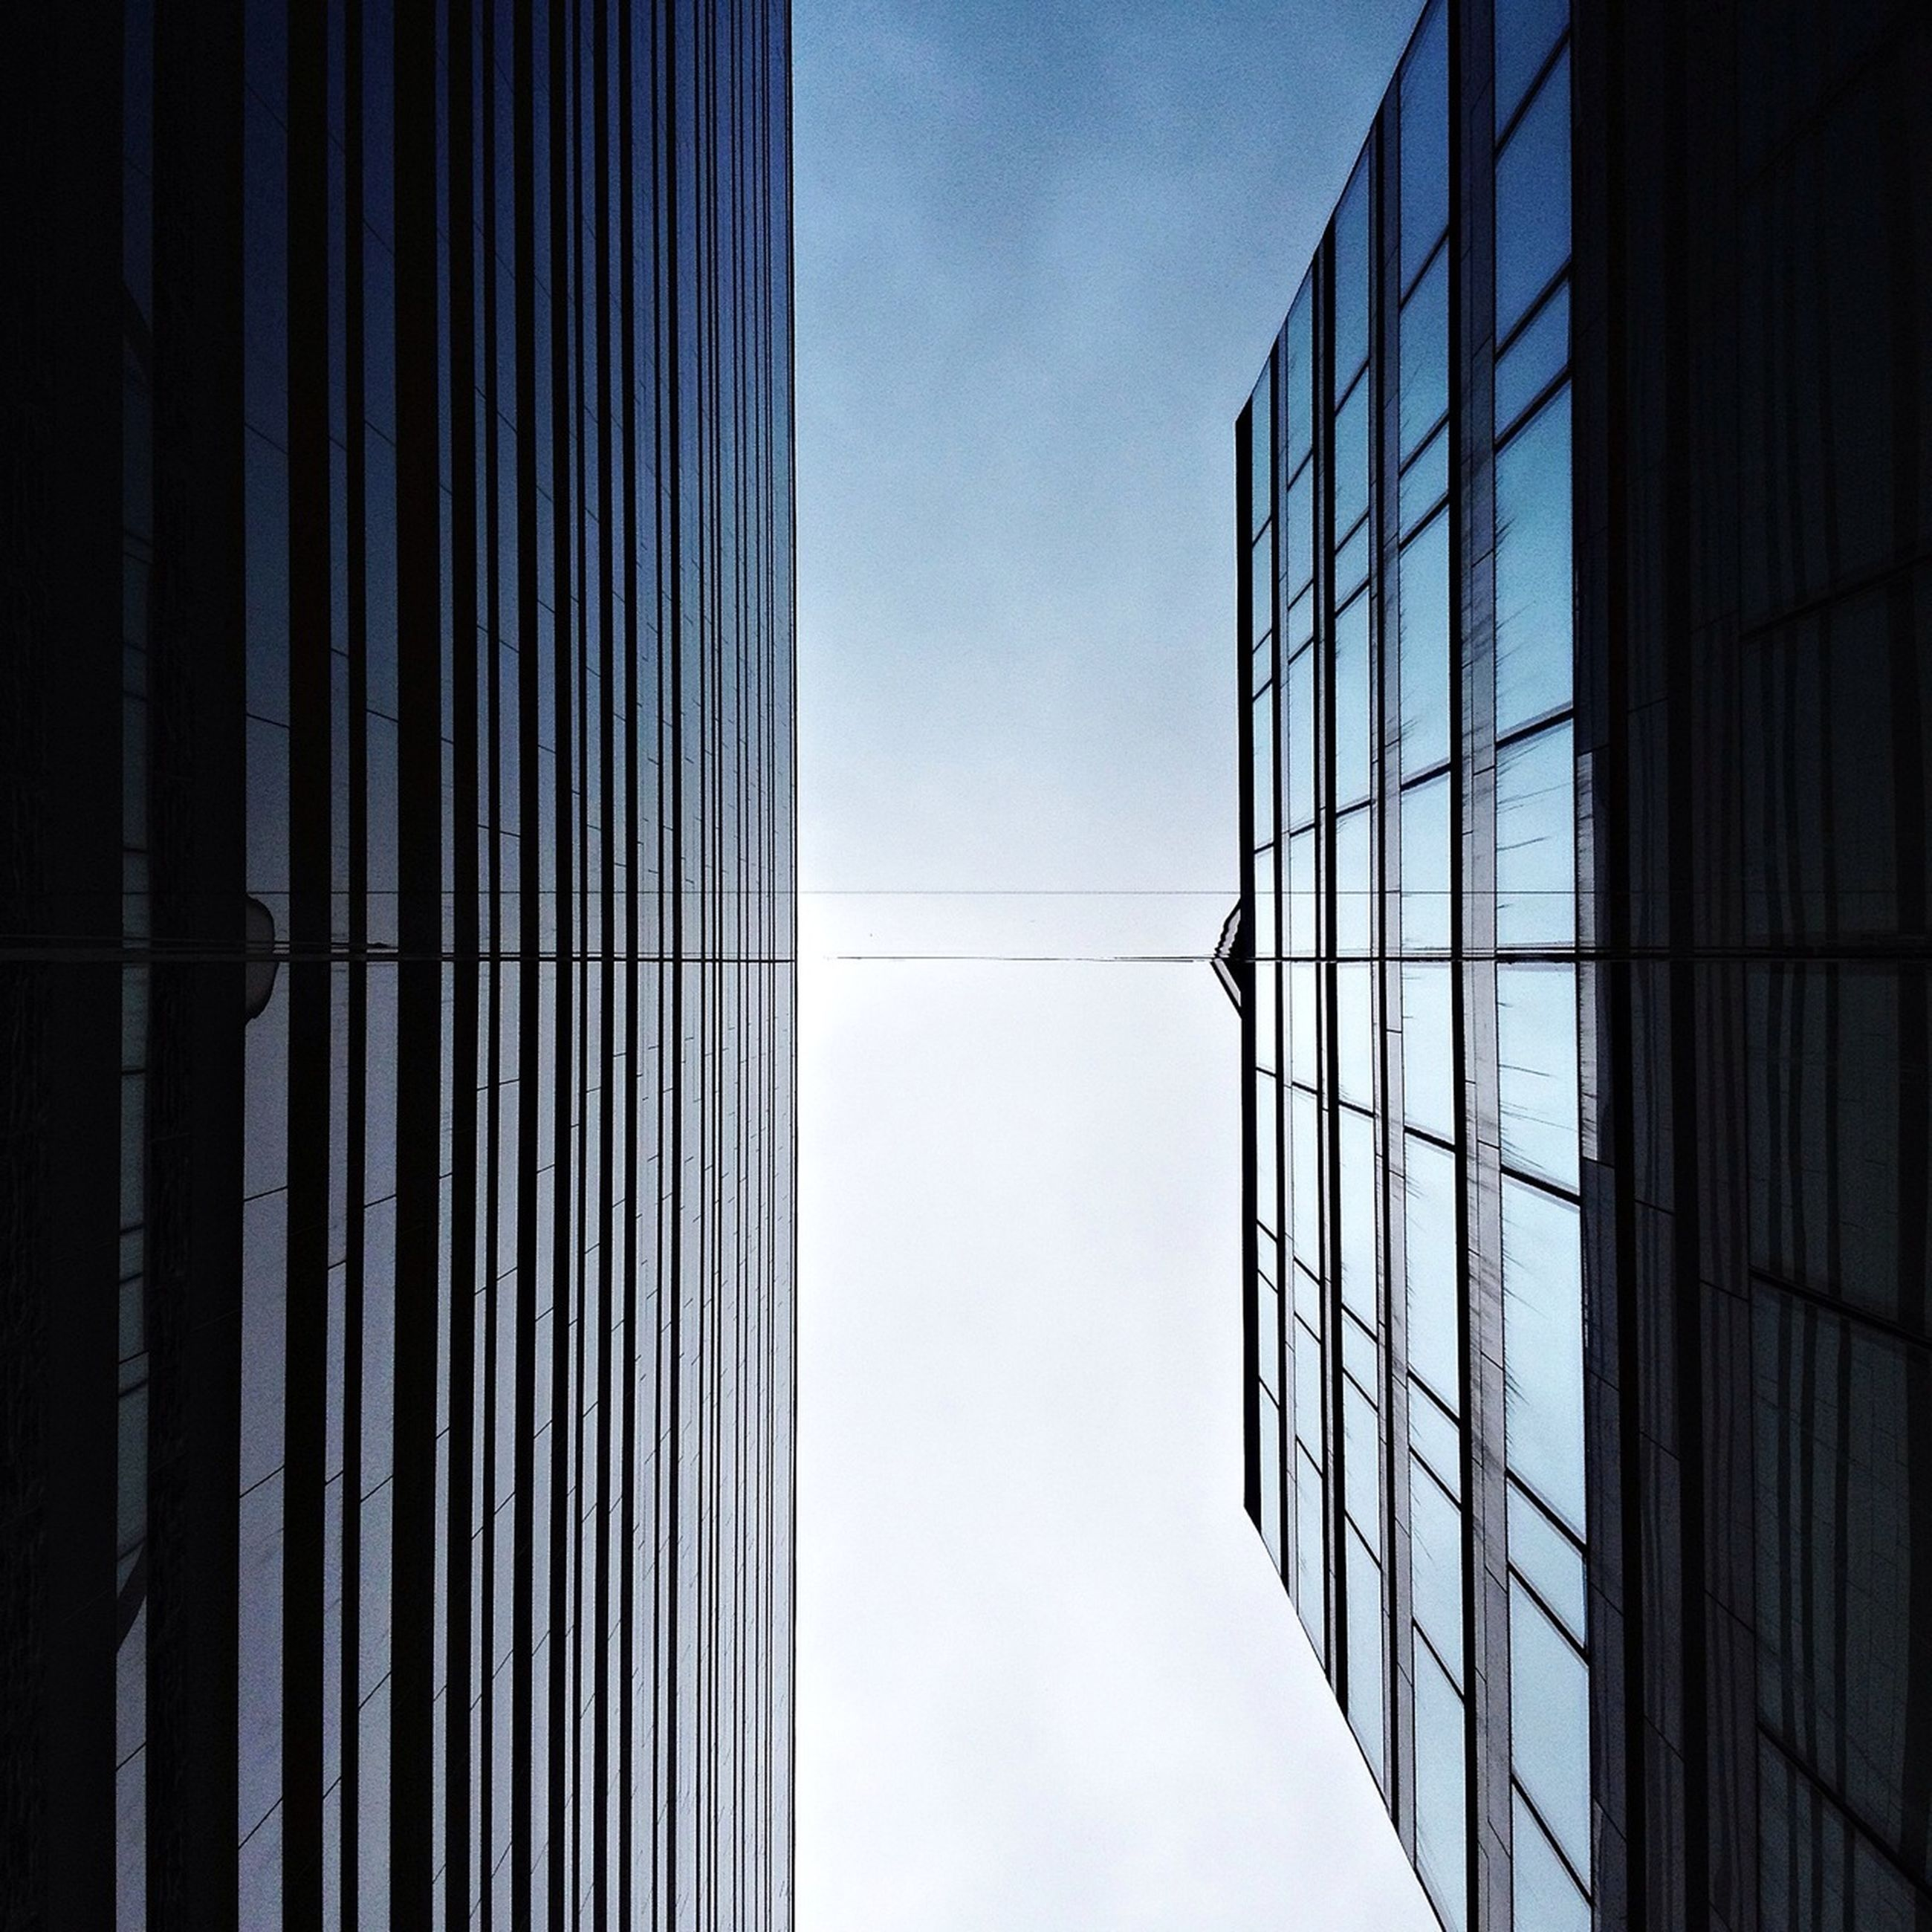 architecture, building exterior, built structure, low angle view, office building, glass - material, window, modern, building, city, reflection, skyscraper, sky, tall - high, tower, day, glass, no people, outdoors, sunlight